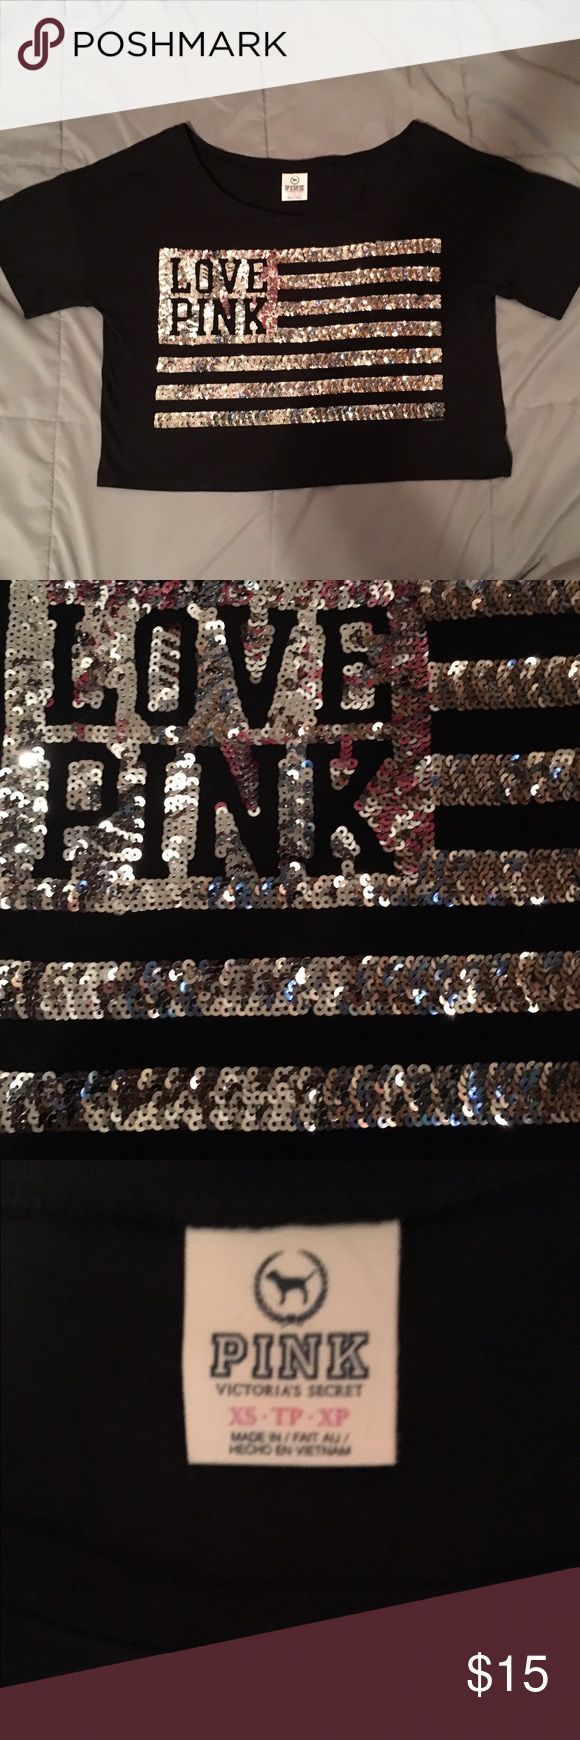 Victoria's Secret Pink XS Sparkly Crop Top Oversized so is really the size of a medium. Def not an xs. PINK Victoria's Secret Tops Crop Tops